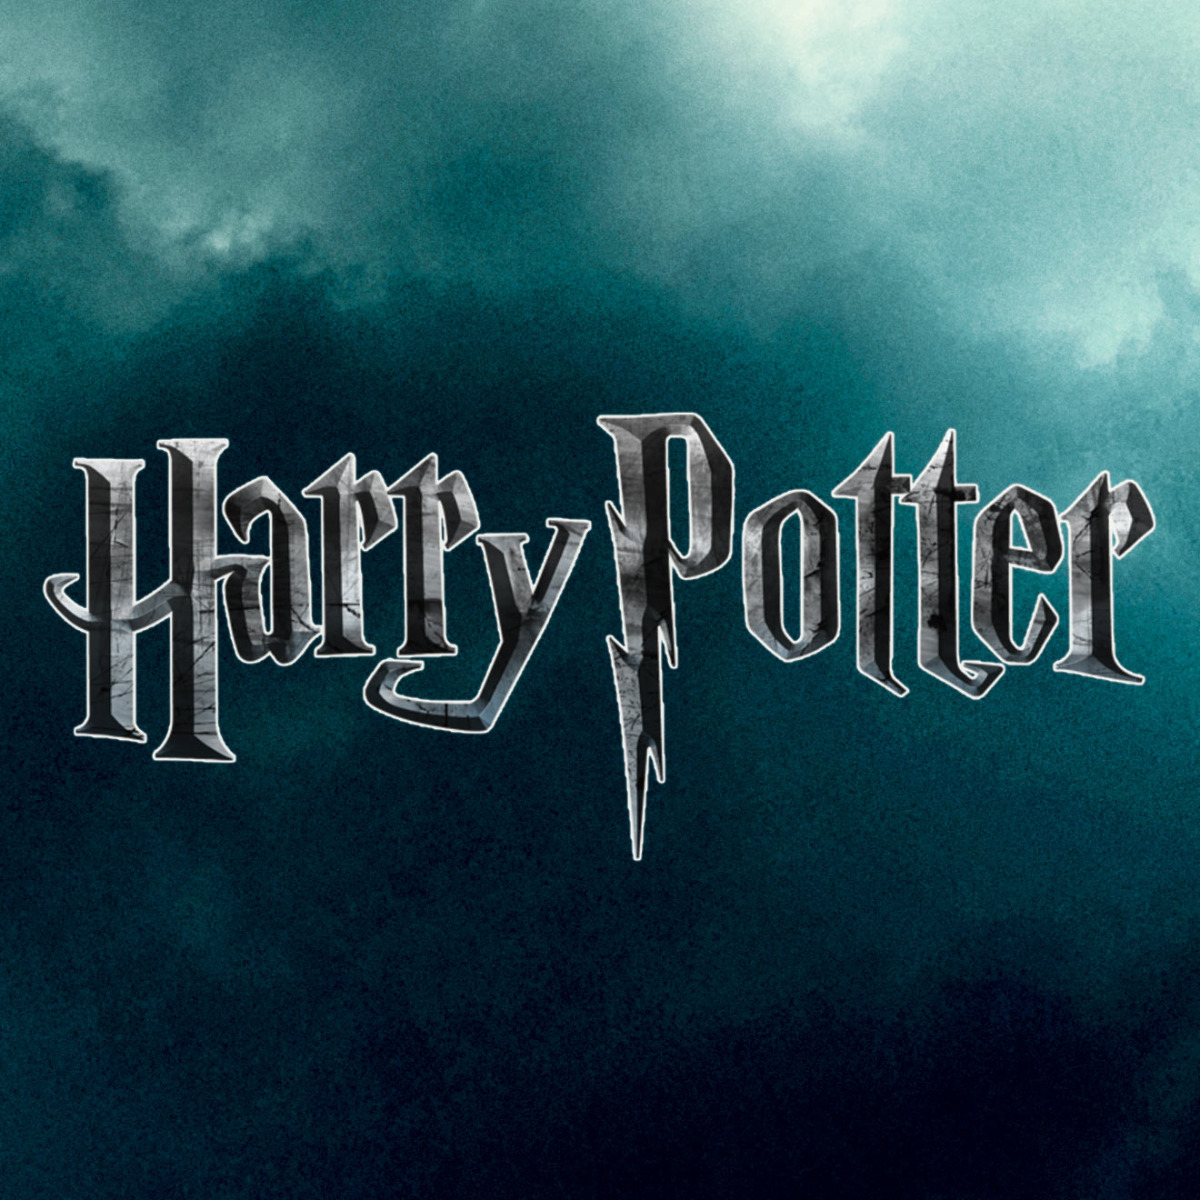 Harry-Potter-Serie in Planung